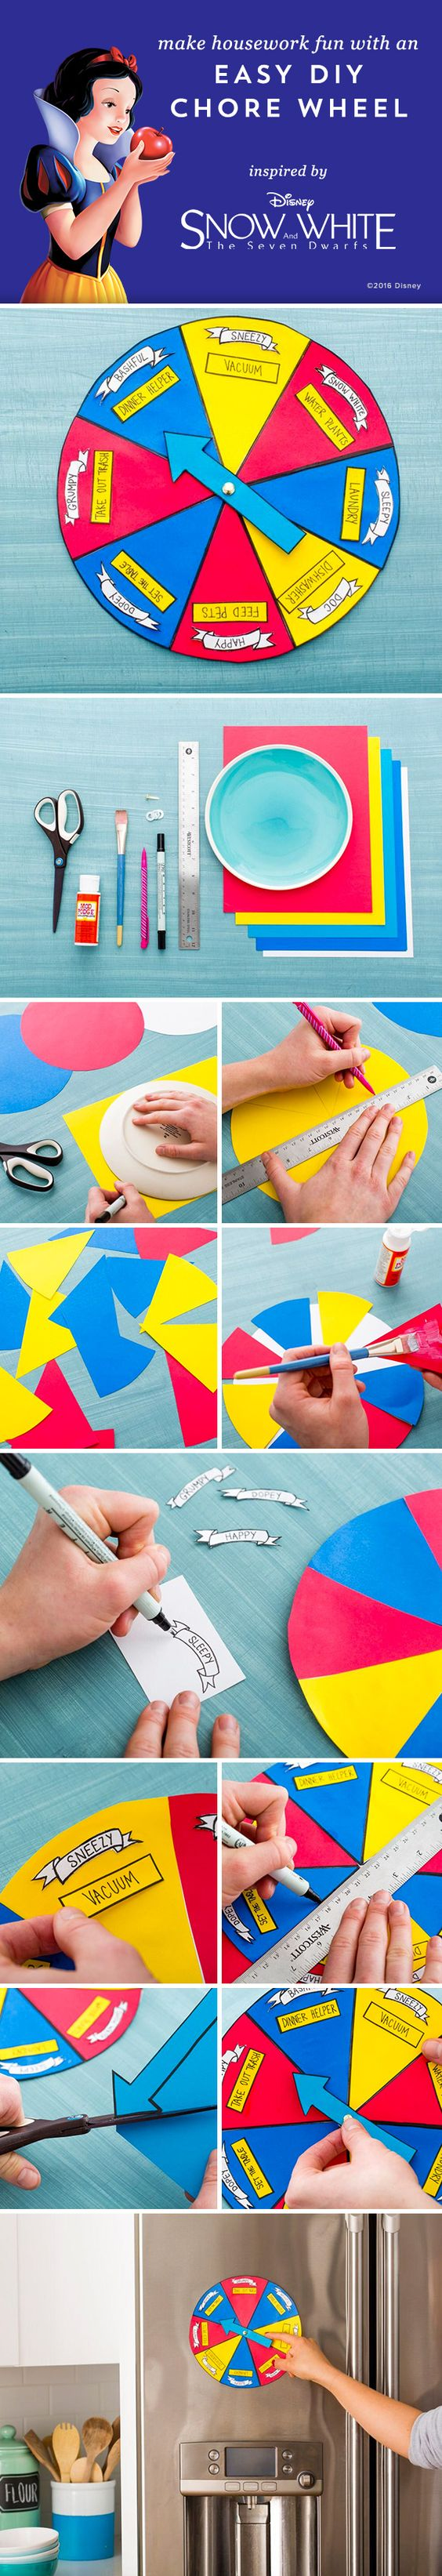 Make your own chore wheel inspired by Disney's Snow White and the Seven Dwarfs. A great DIY activity for the entire family to stay organized! Bring the movie home to your family on Digital HD & Disney Movies Anywhere Jan 19 and on Blu-ray Feb 2.